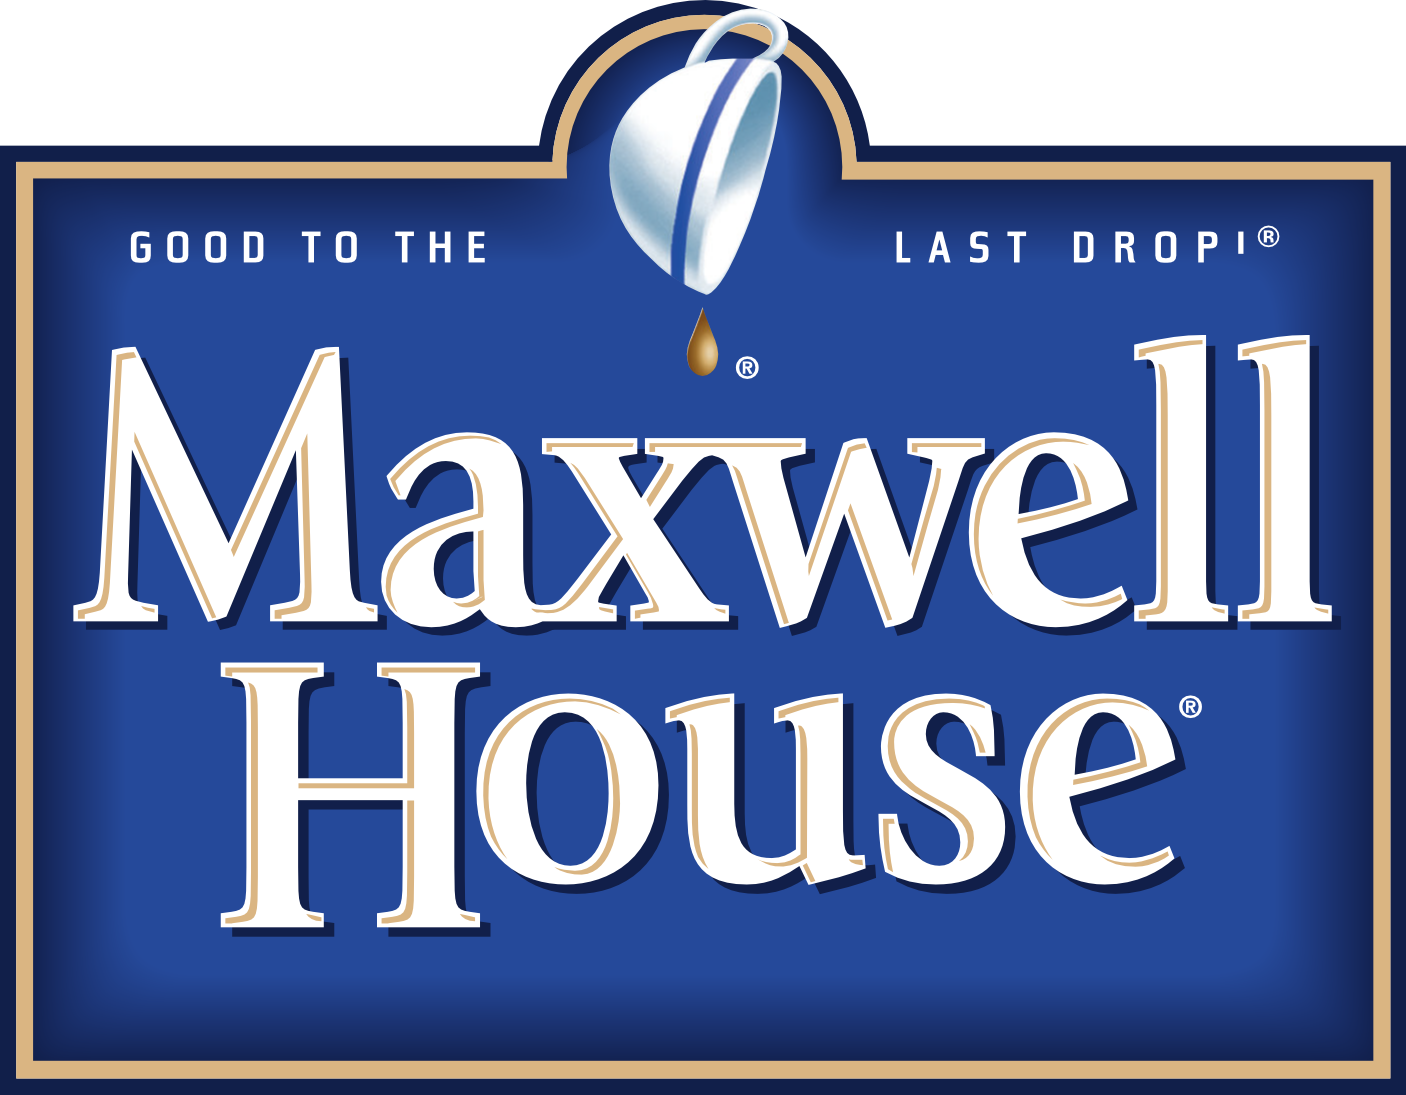 image regarding Maxwell House Coffee Coupons Printable known as Maxwell-Space Discount codes - The Krazy Coupon Woman